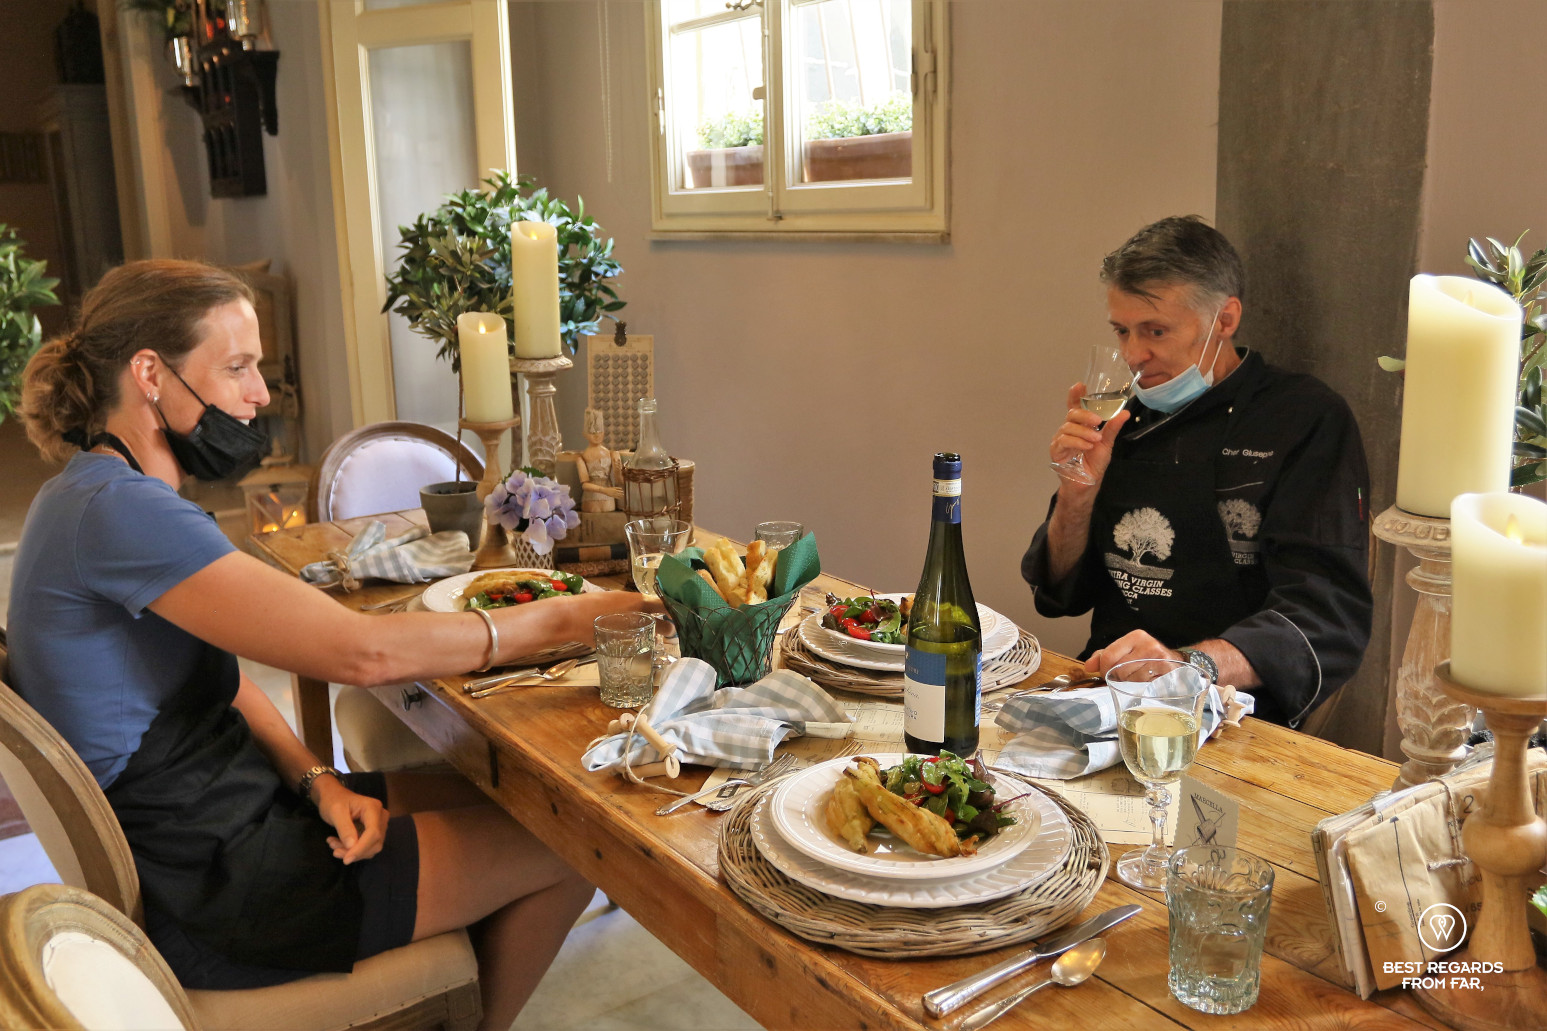 Two people at a nicely decorated table having home-cooked Italian food